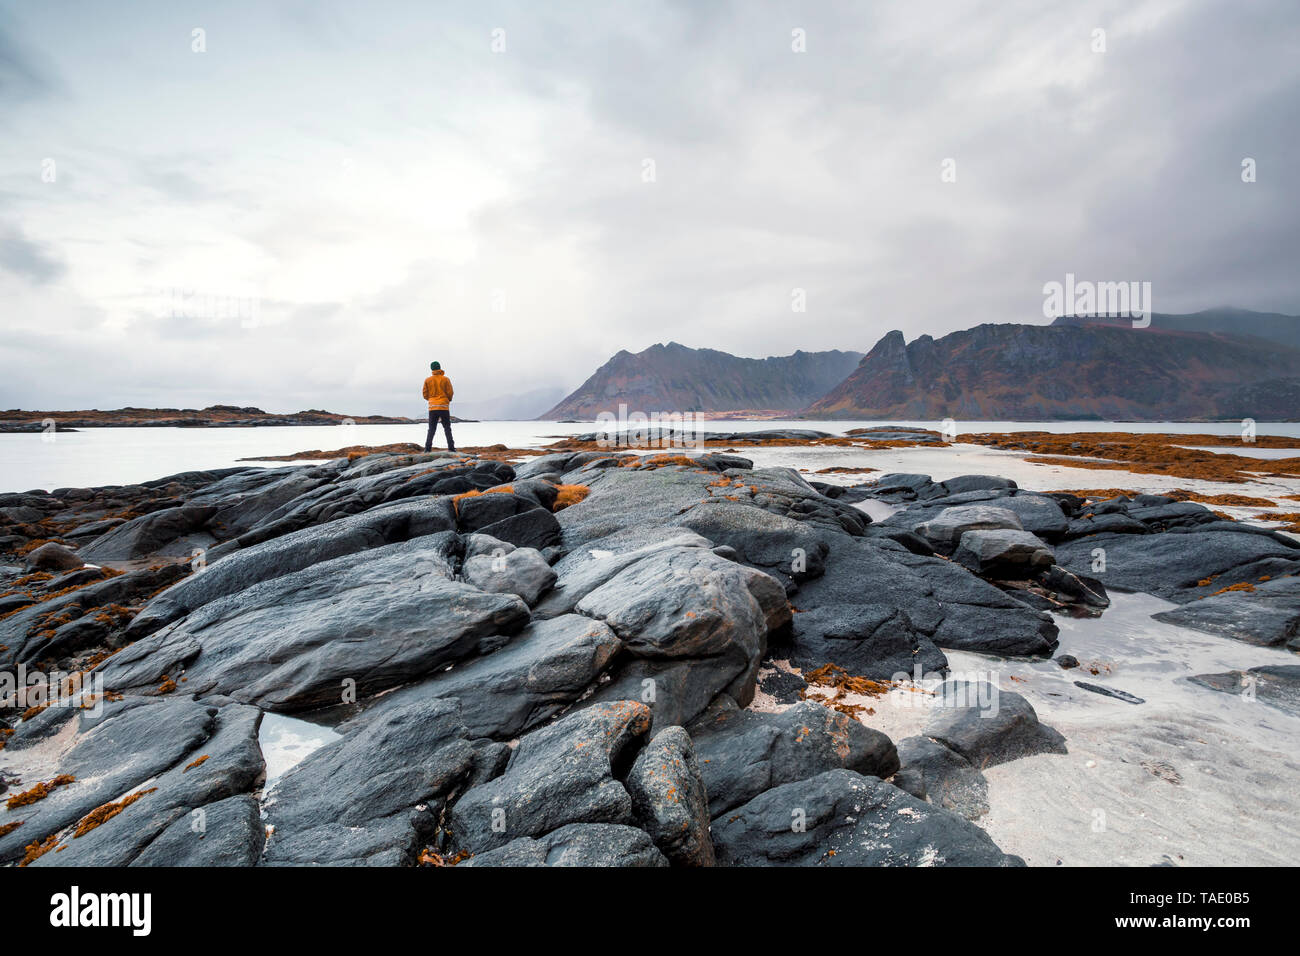 Norway, Lofoten Islands, Gimsoysand, man standing at rocky coast - Stock Image